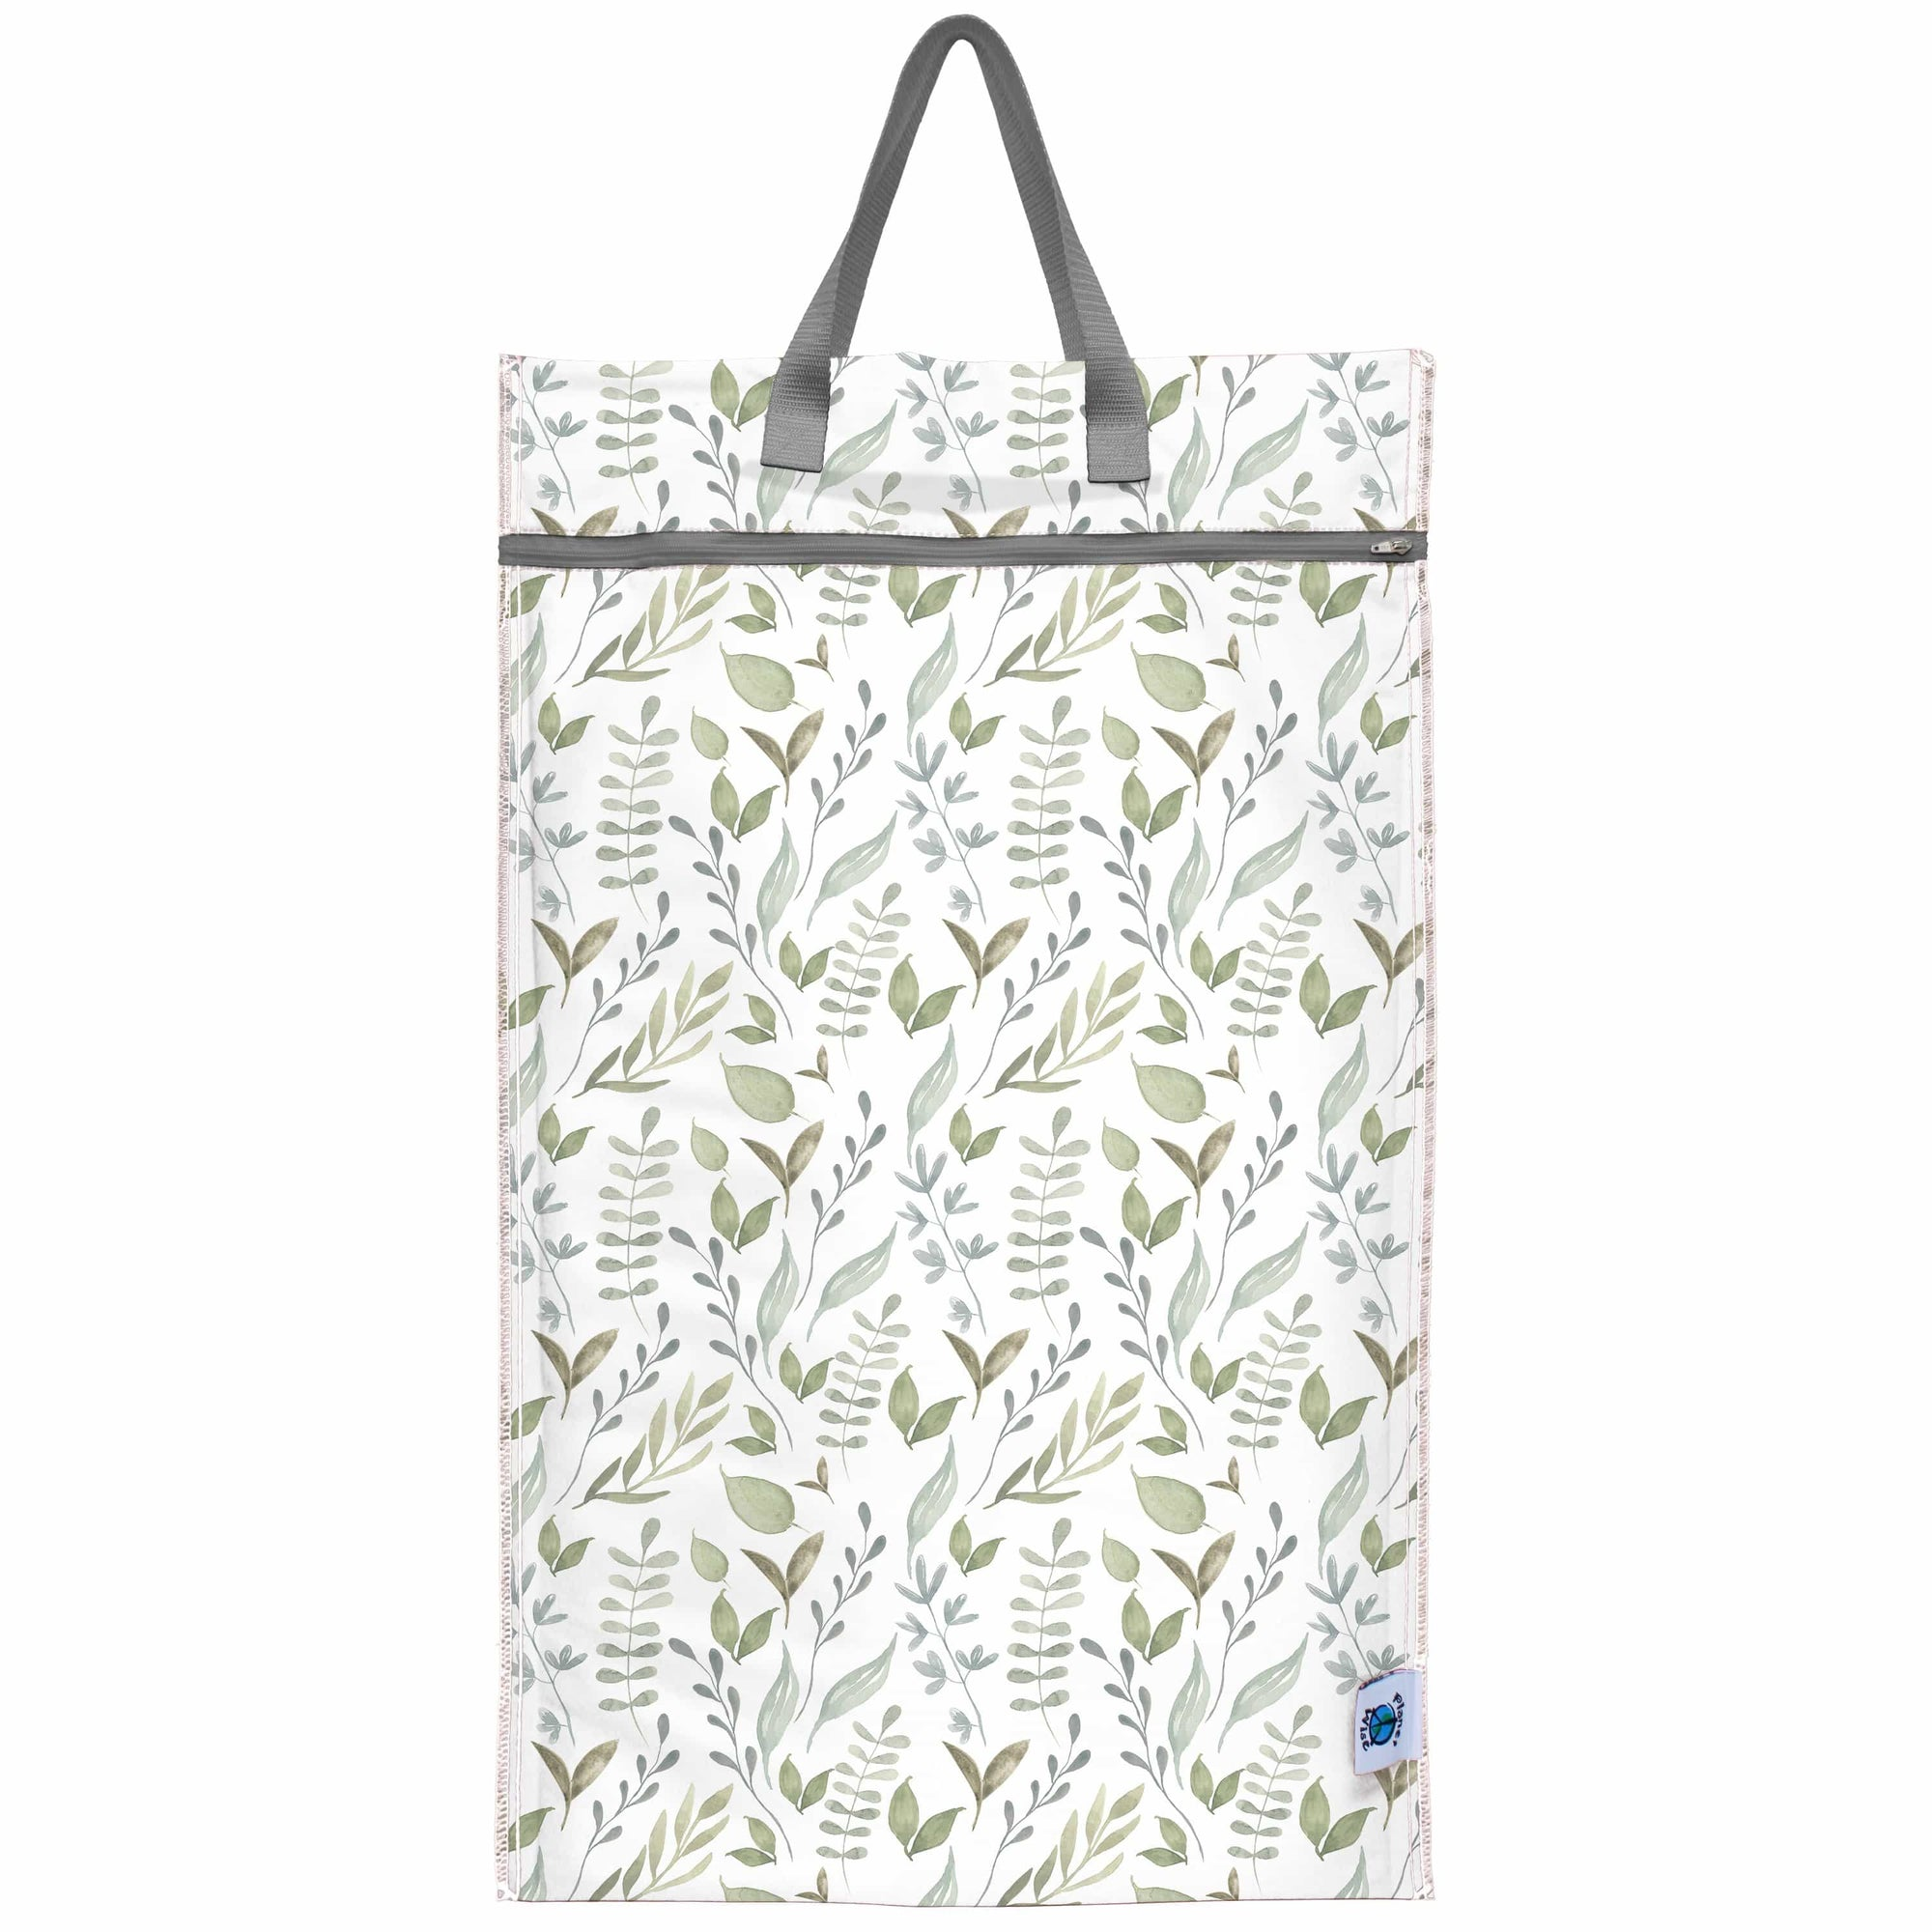 Planet Wise Lite Hanging Wet Bag - Beleaf In Yourself